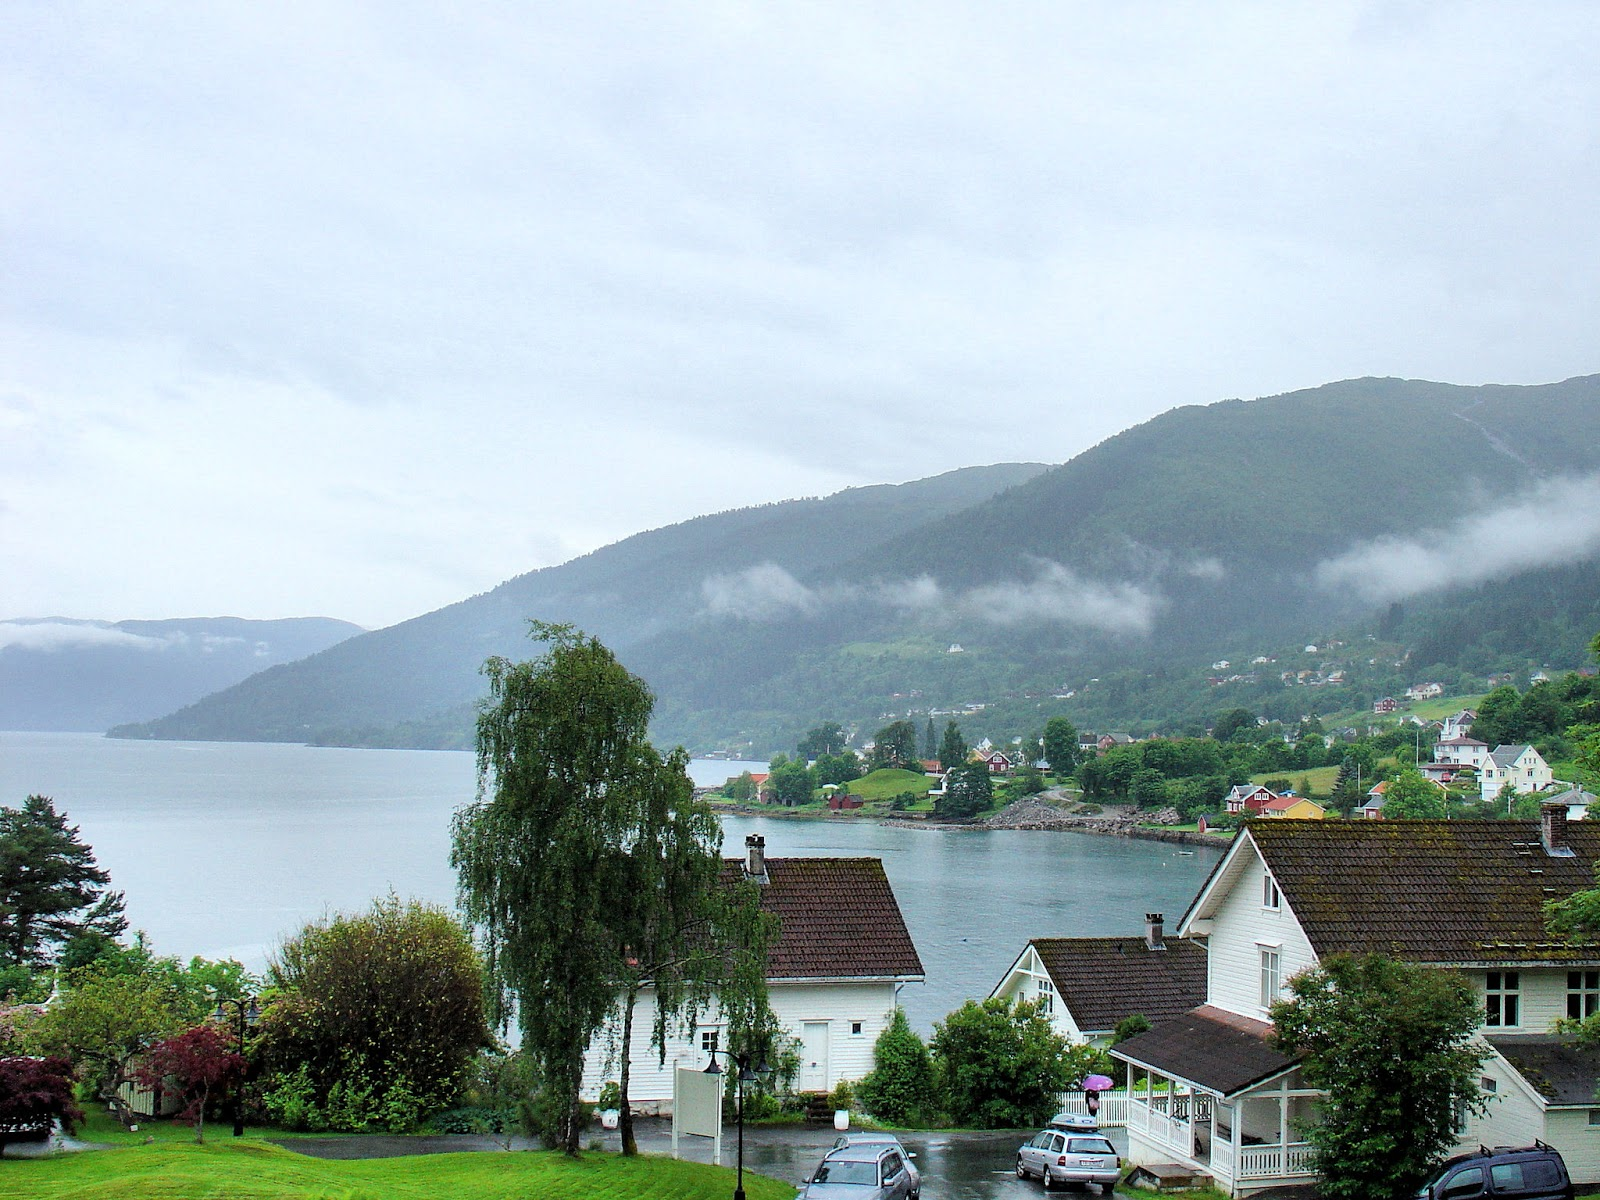 The enchanting village of Balestrand, Norway. Things haven't changed much since Astrup's time. Photo: EuroTravelogue™. Unauthorized use is prohibited.